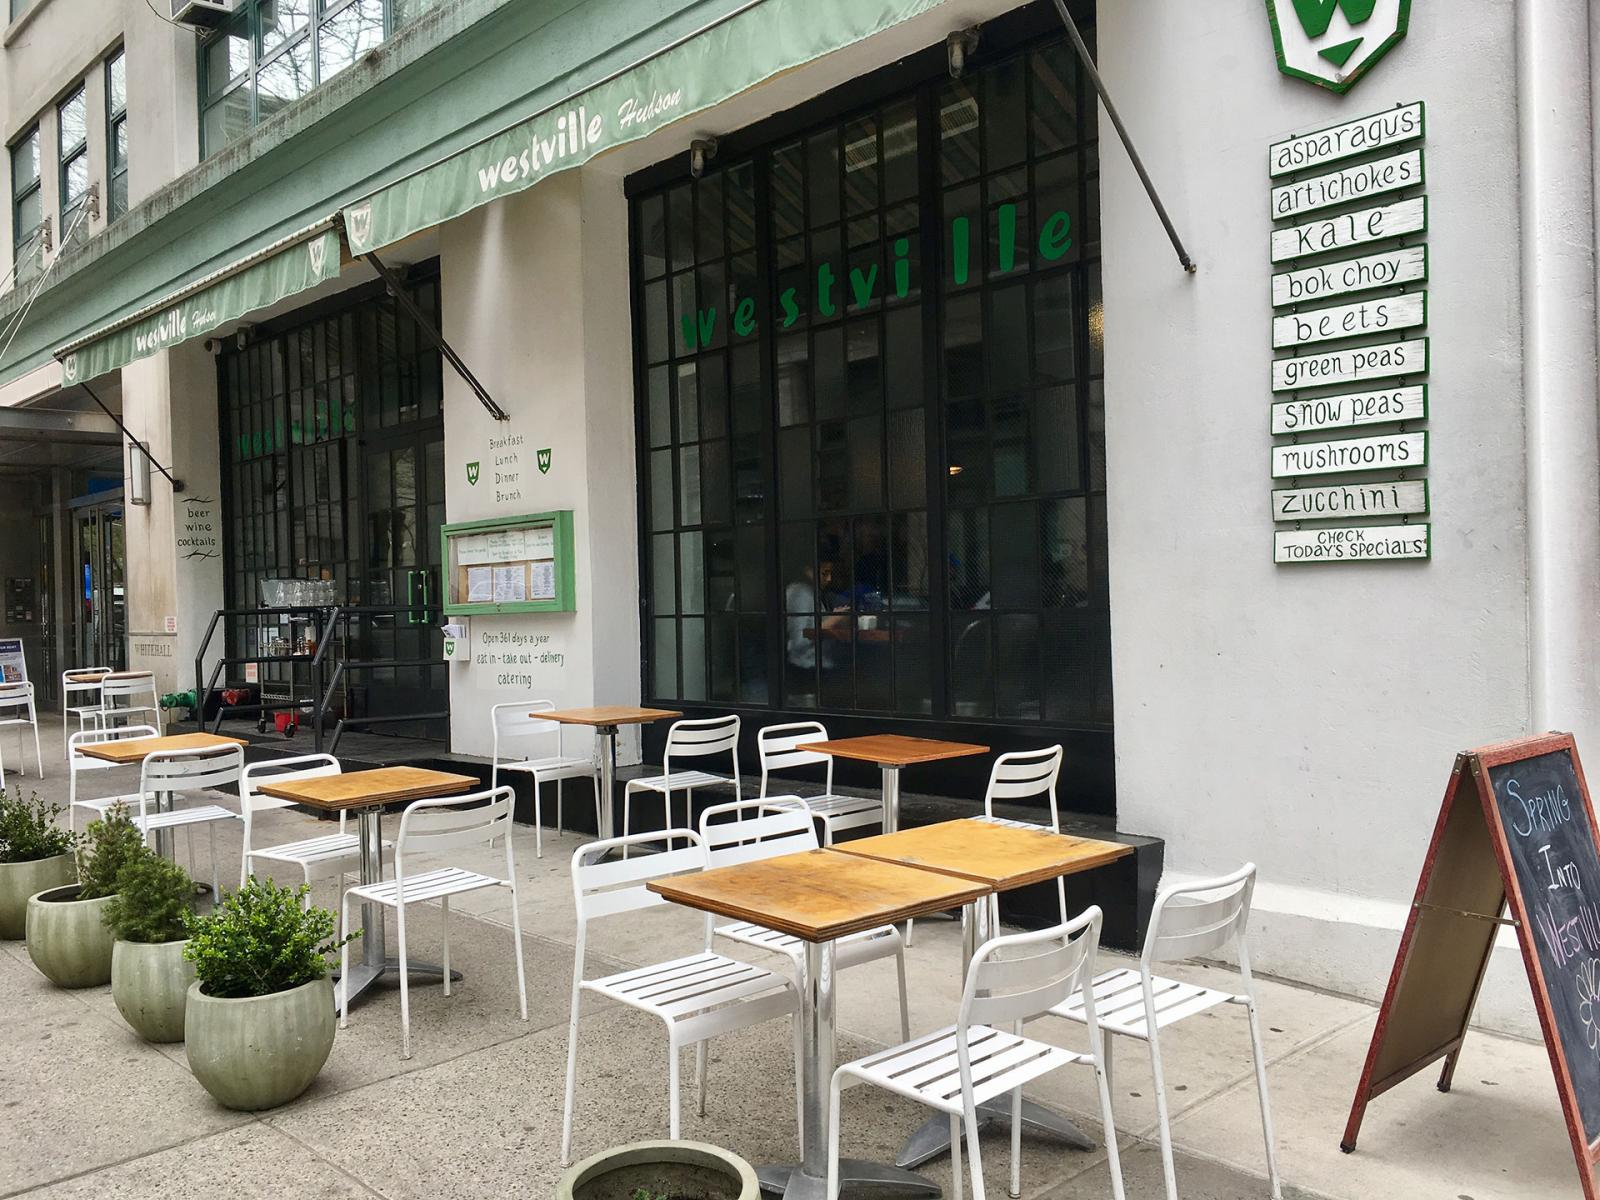 Our Review Of Westville NYC